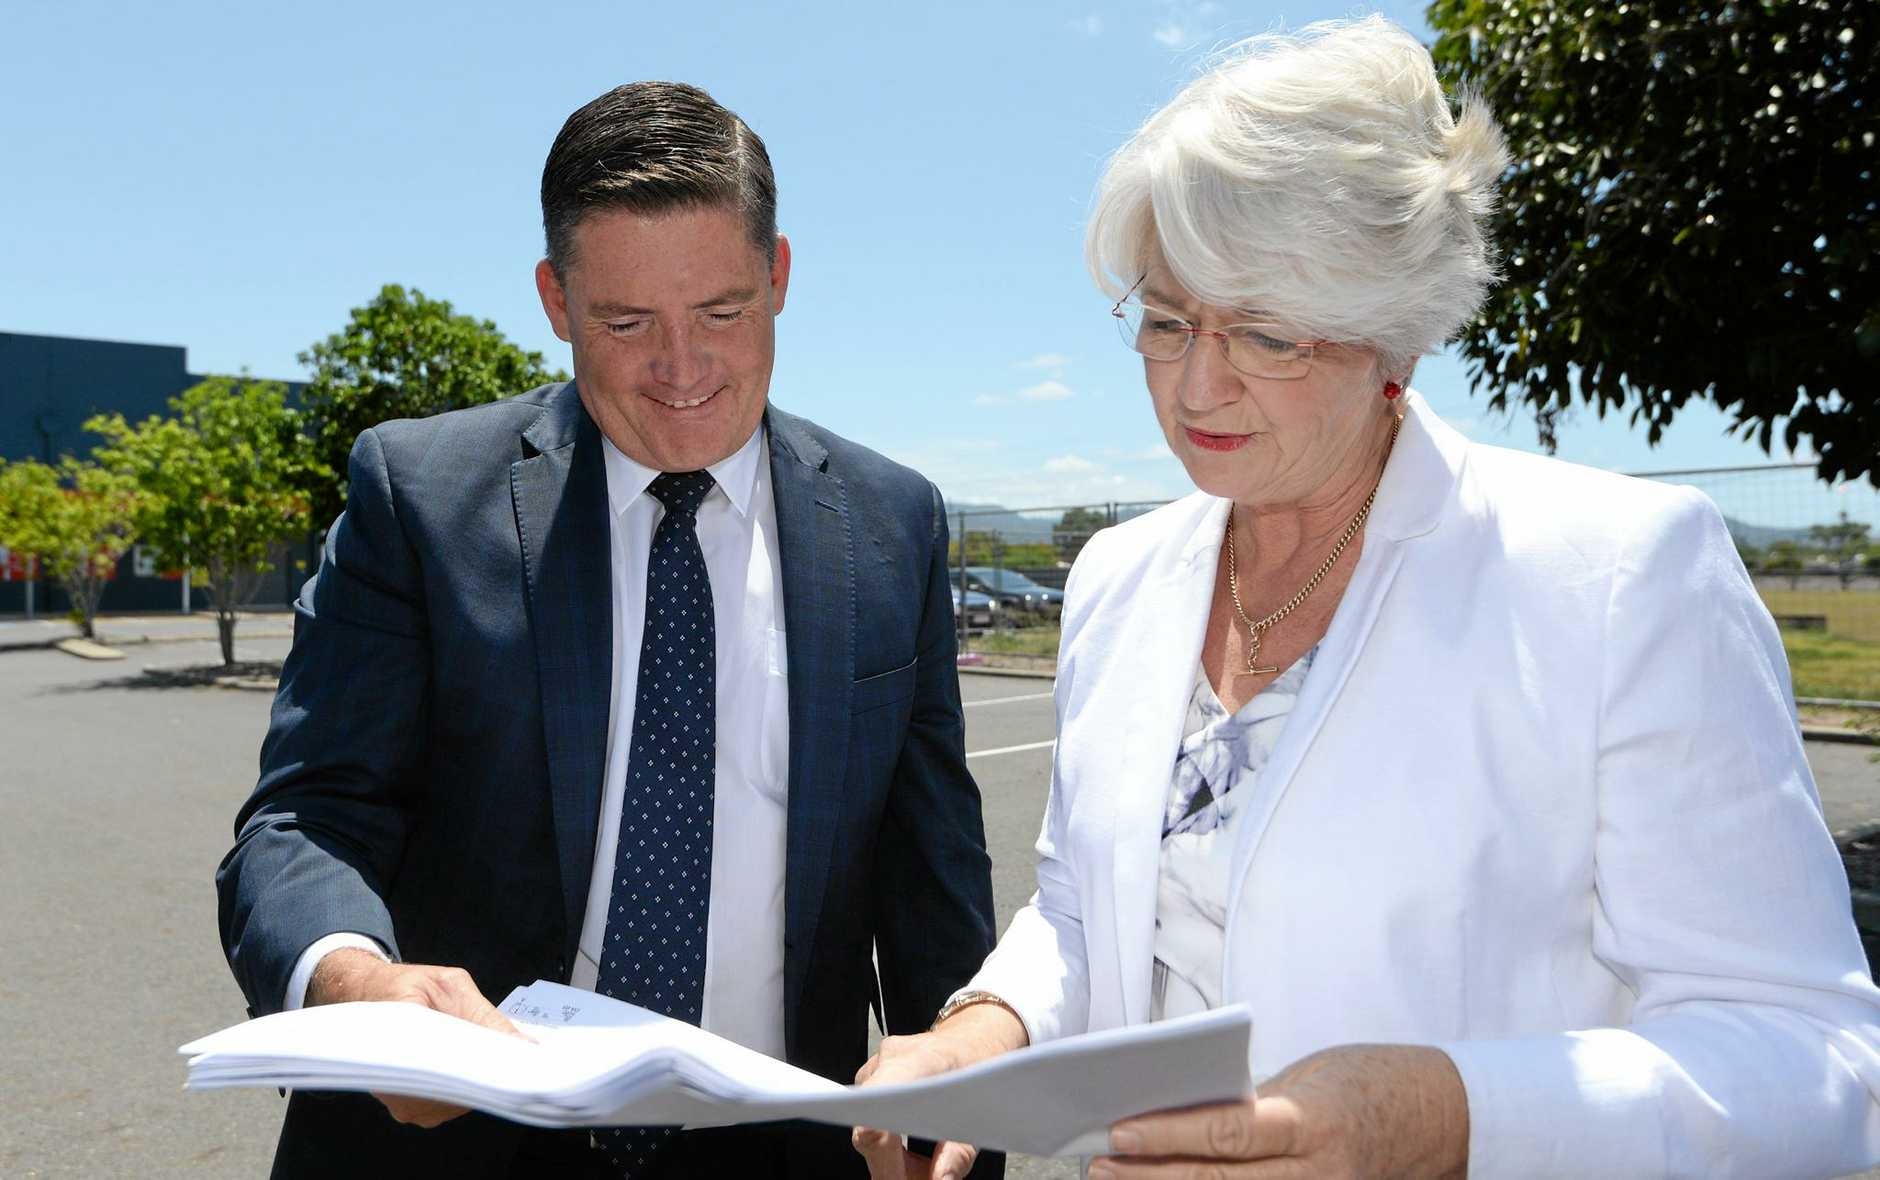 Aldi Property Director Brendan Geary with Mayor Margaret Stelow looking over plans for the Aldi store which is to be built next to Fantastic Furniture on Gladstone Road.